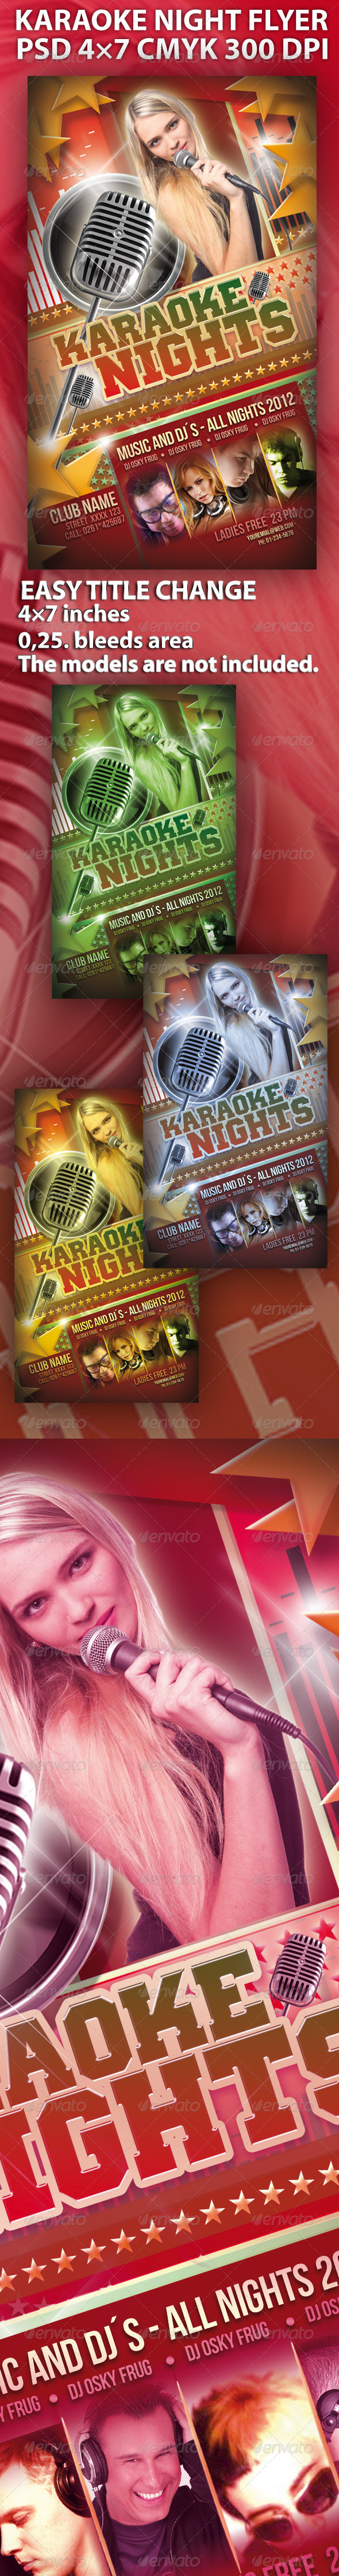 Karaoke Night Flyer - Clubs & Parties Events